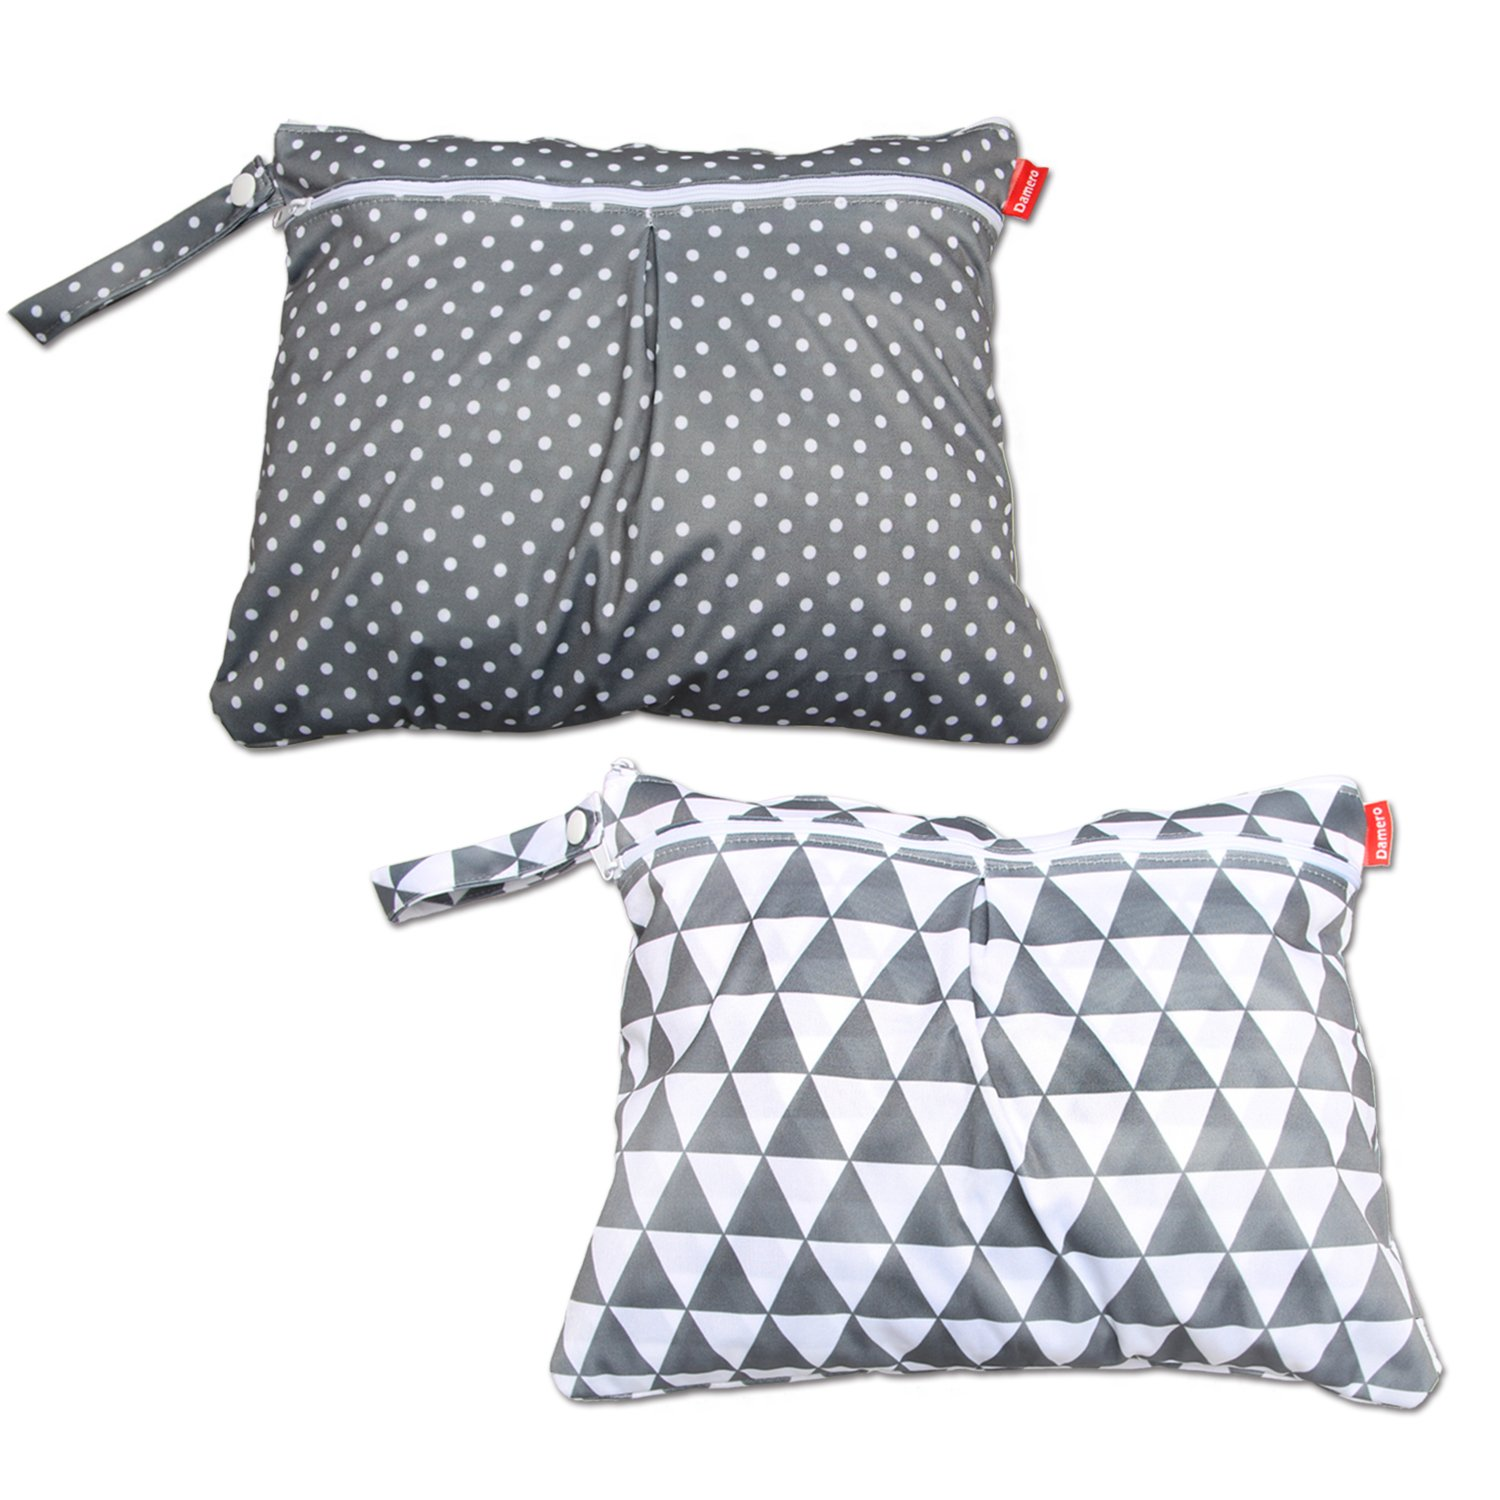 Damero 2pcs/Pack Baby Wet and Dry Bag, Travel Diaper Organiser Bag with Handle, Double Zipper Compartments for Baby's Nappies, Dirty Clothes and More (Medium, Grey Triangle+Grey Dots)